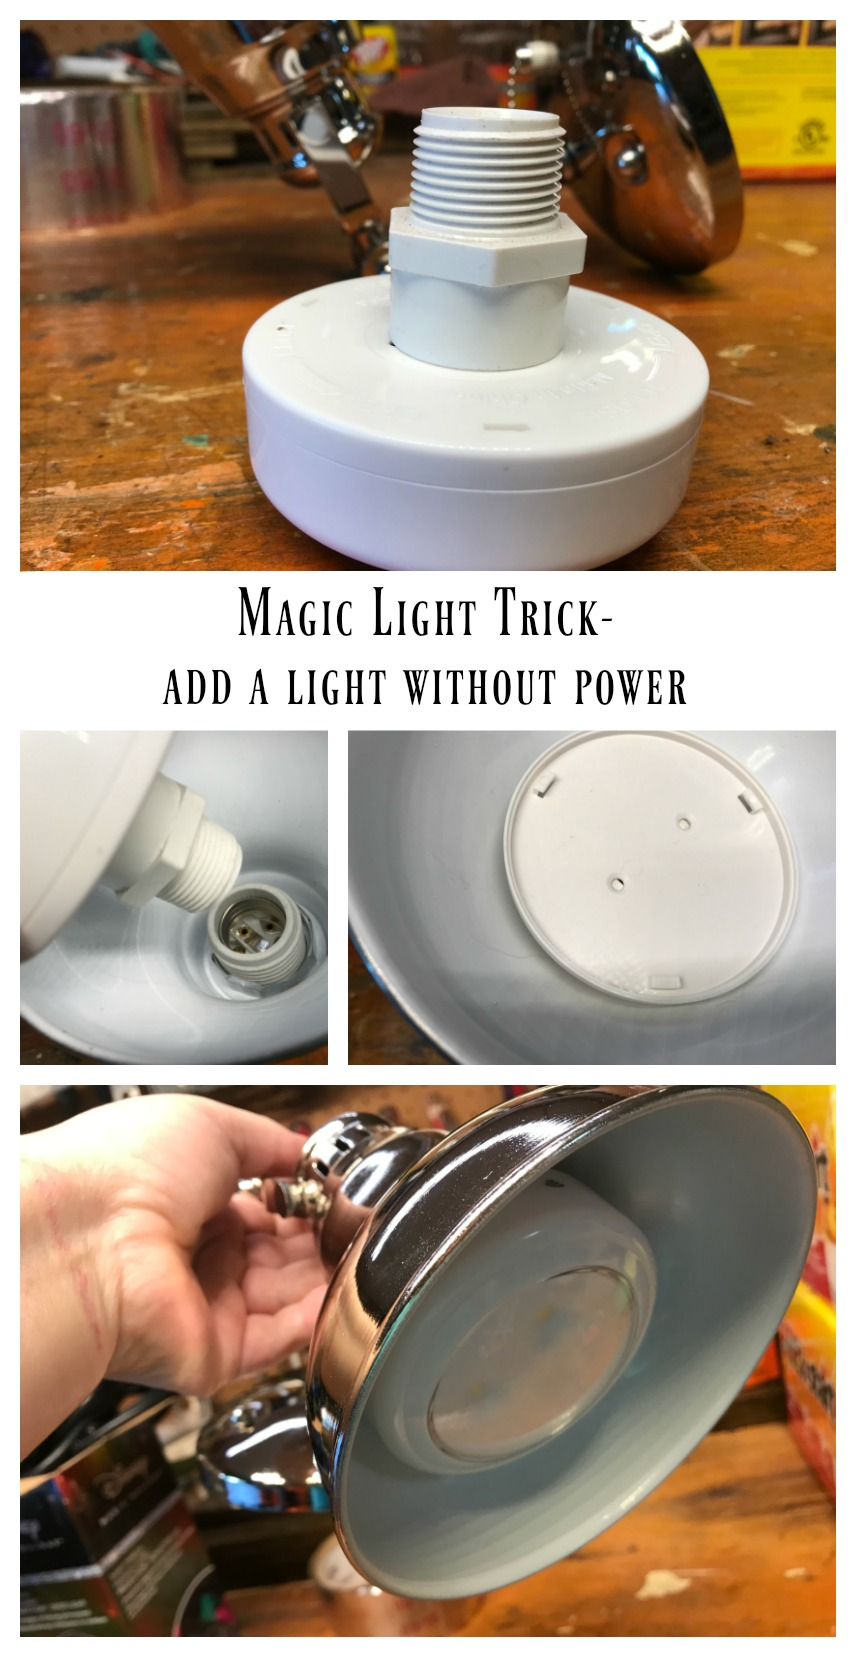 Magic Light Trick- Add a light without power